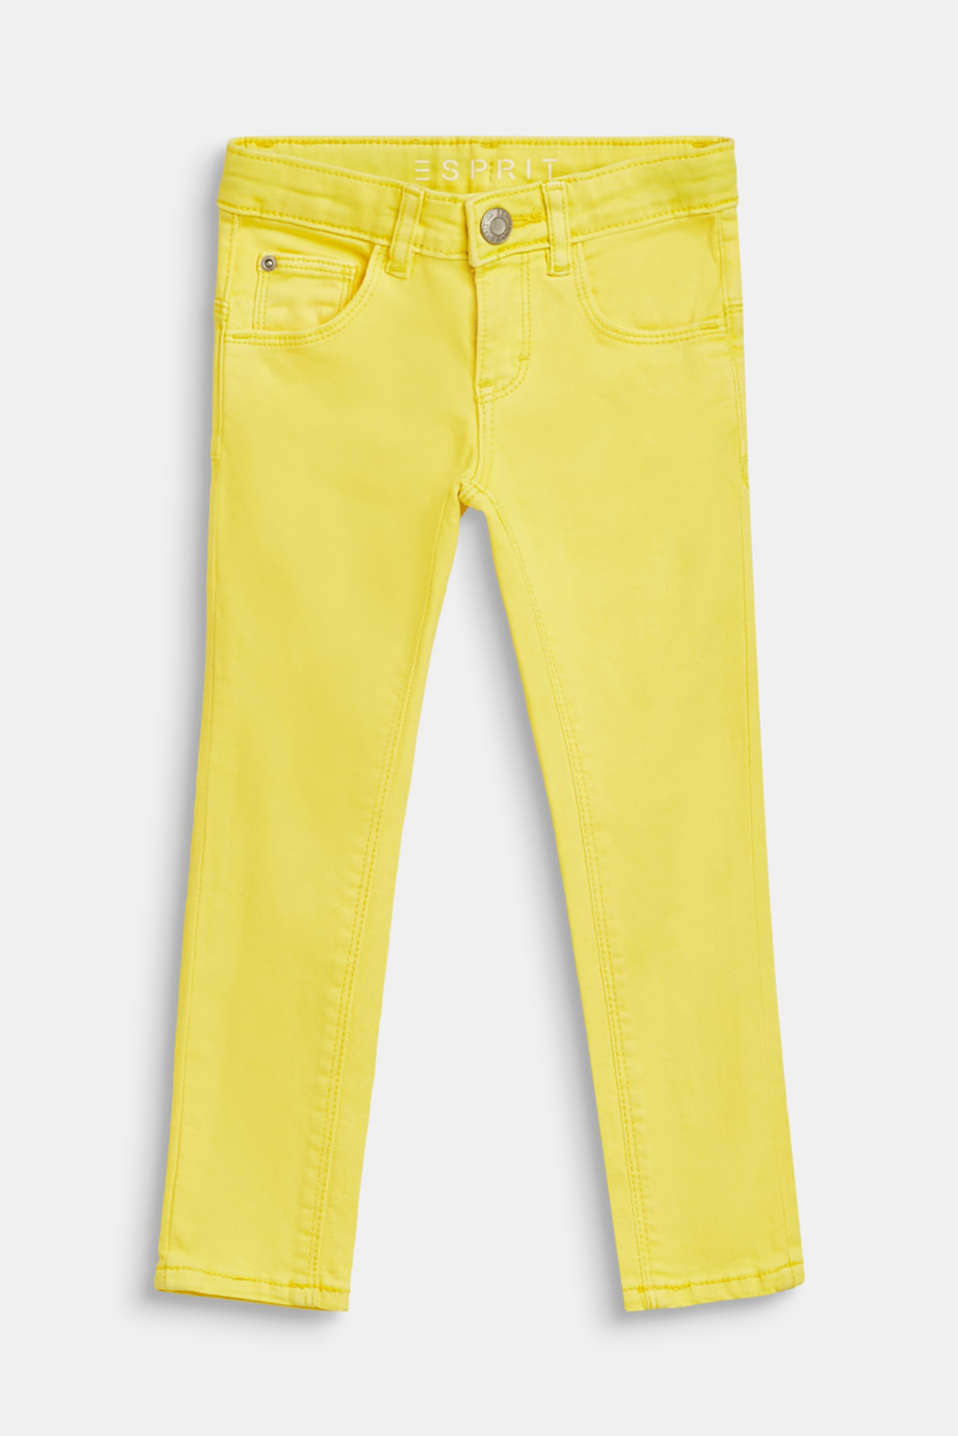 Esprit - Coloured stretch jeans in stretch cotton